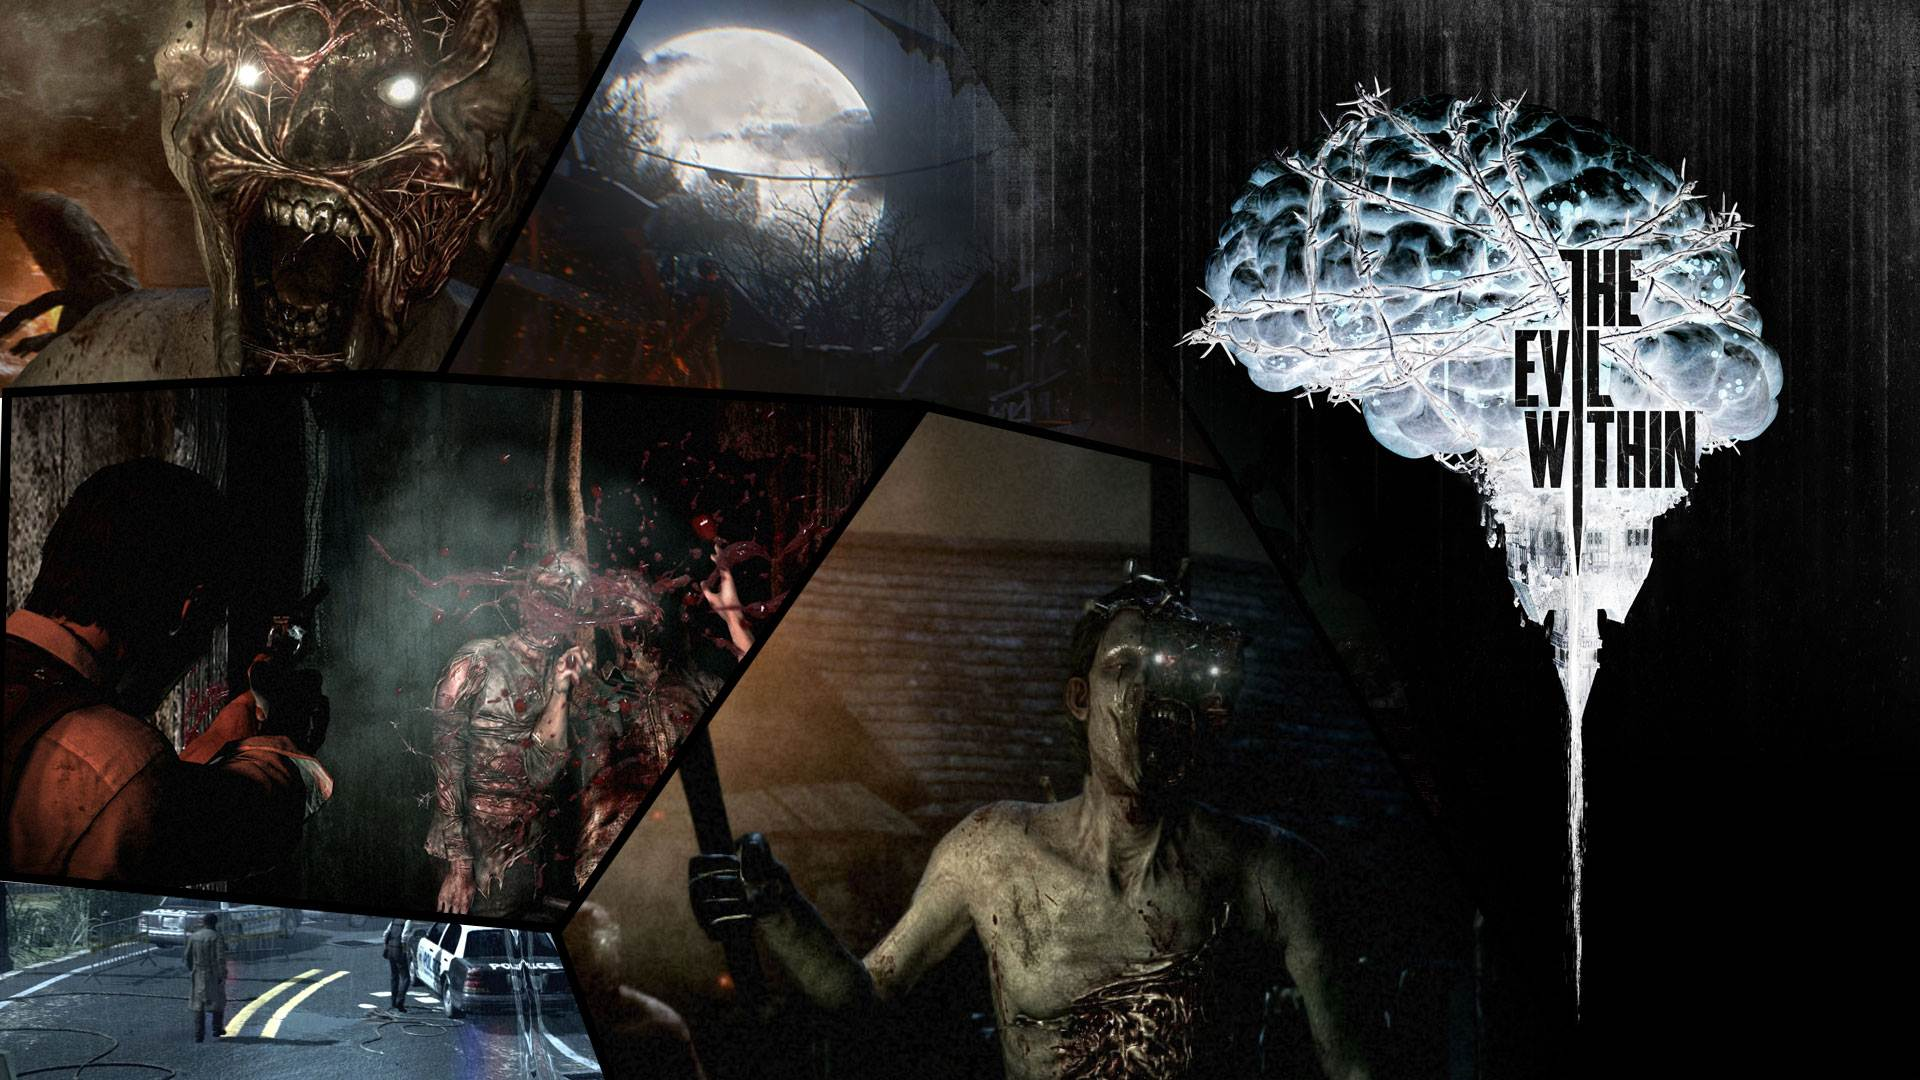 The Evil Within Wallpapers Or Desktop Backgrounds: The Evil Within Preview